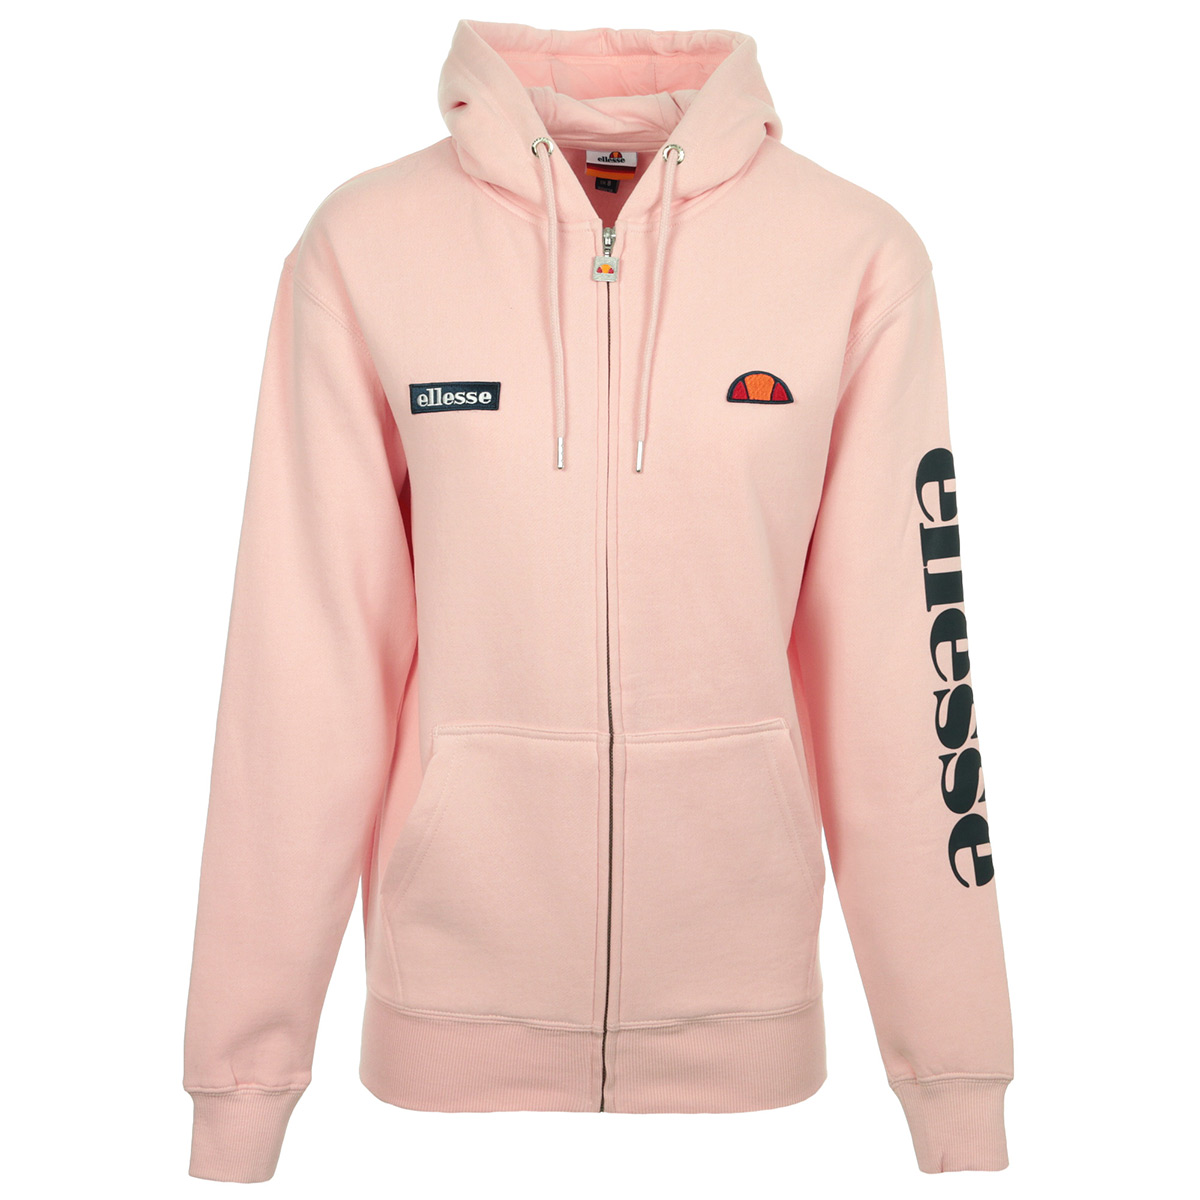 Ellesse Serinatas Full Zip Hoody Wn's